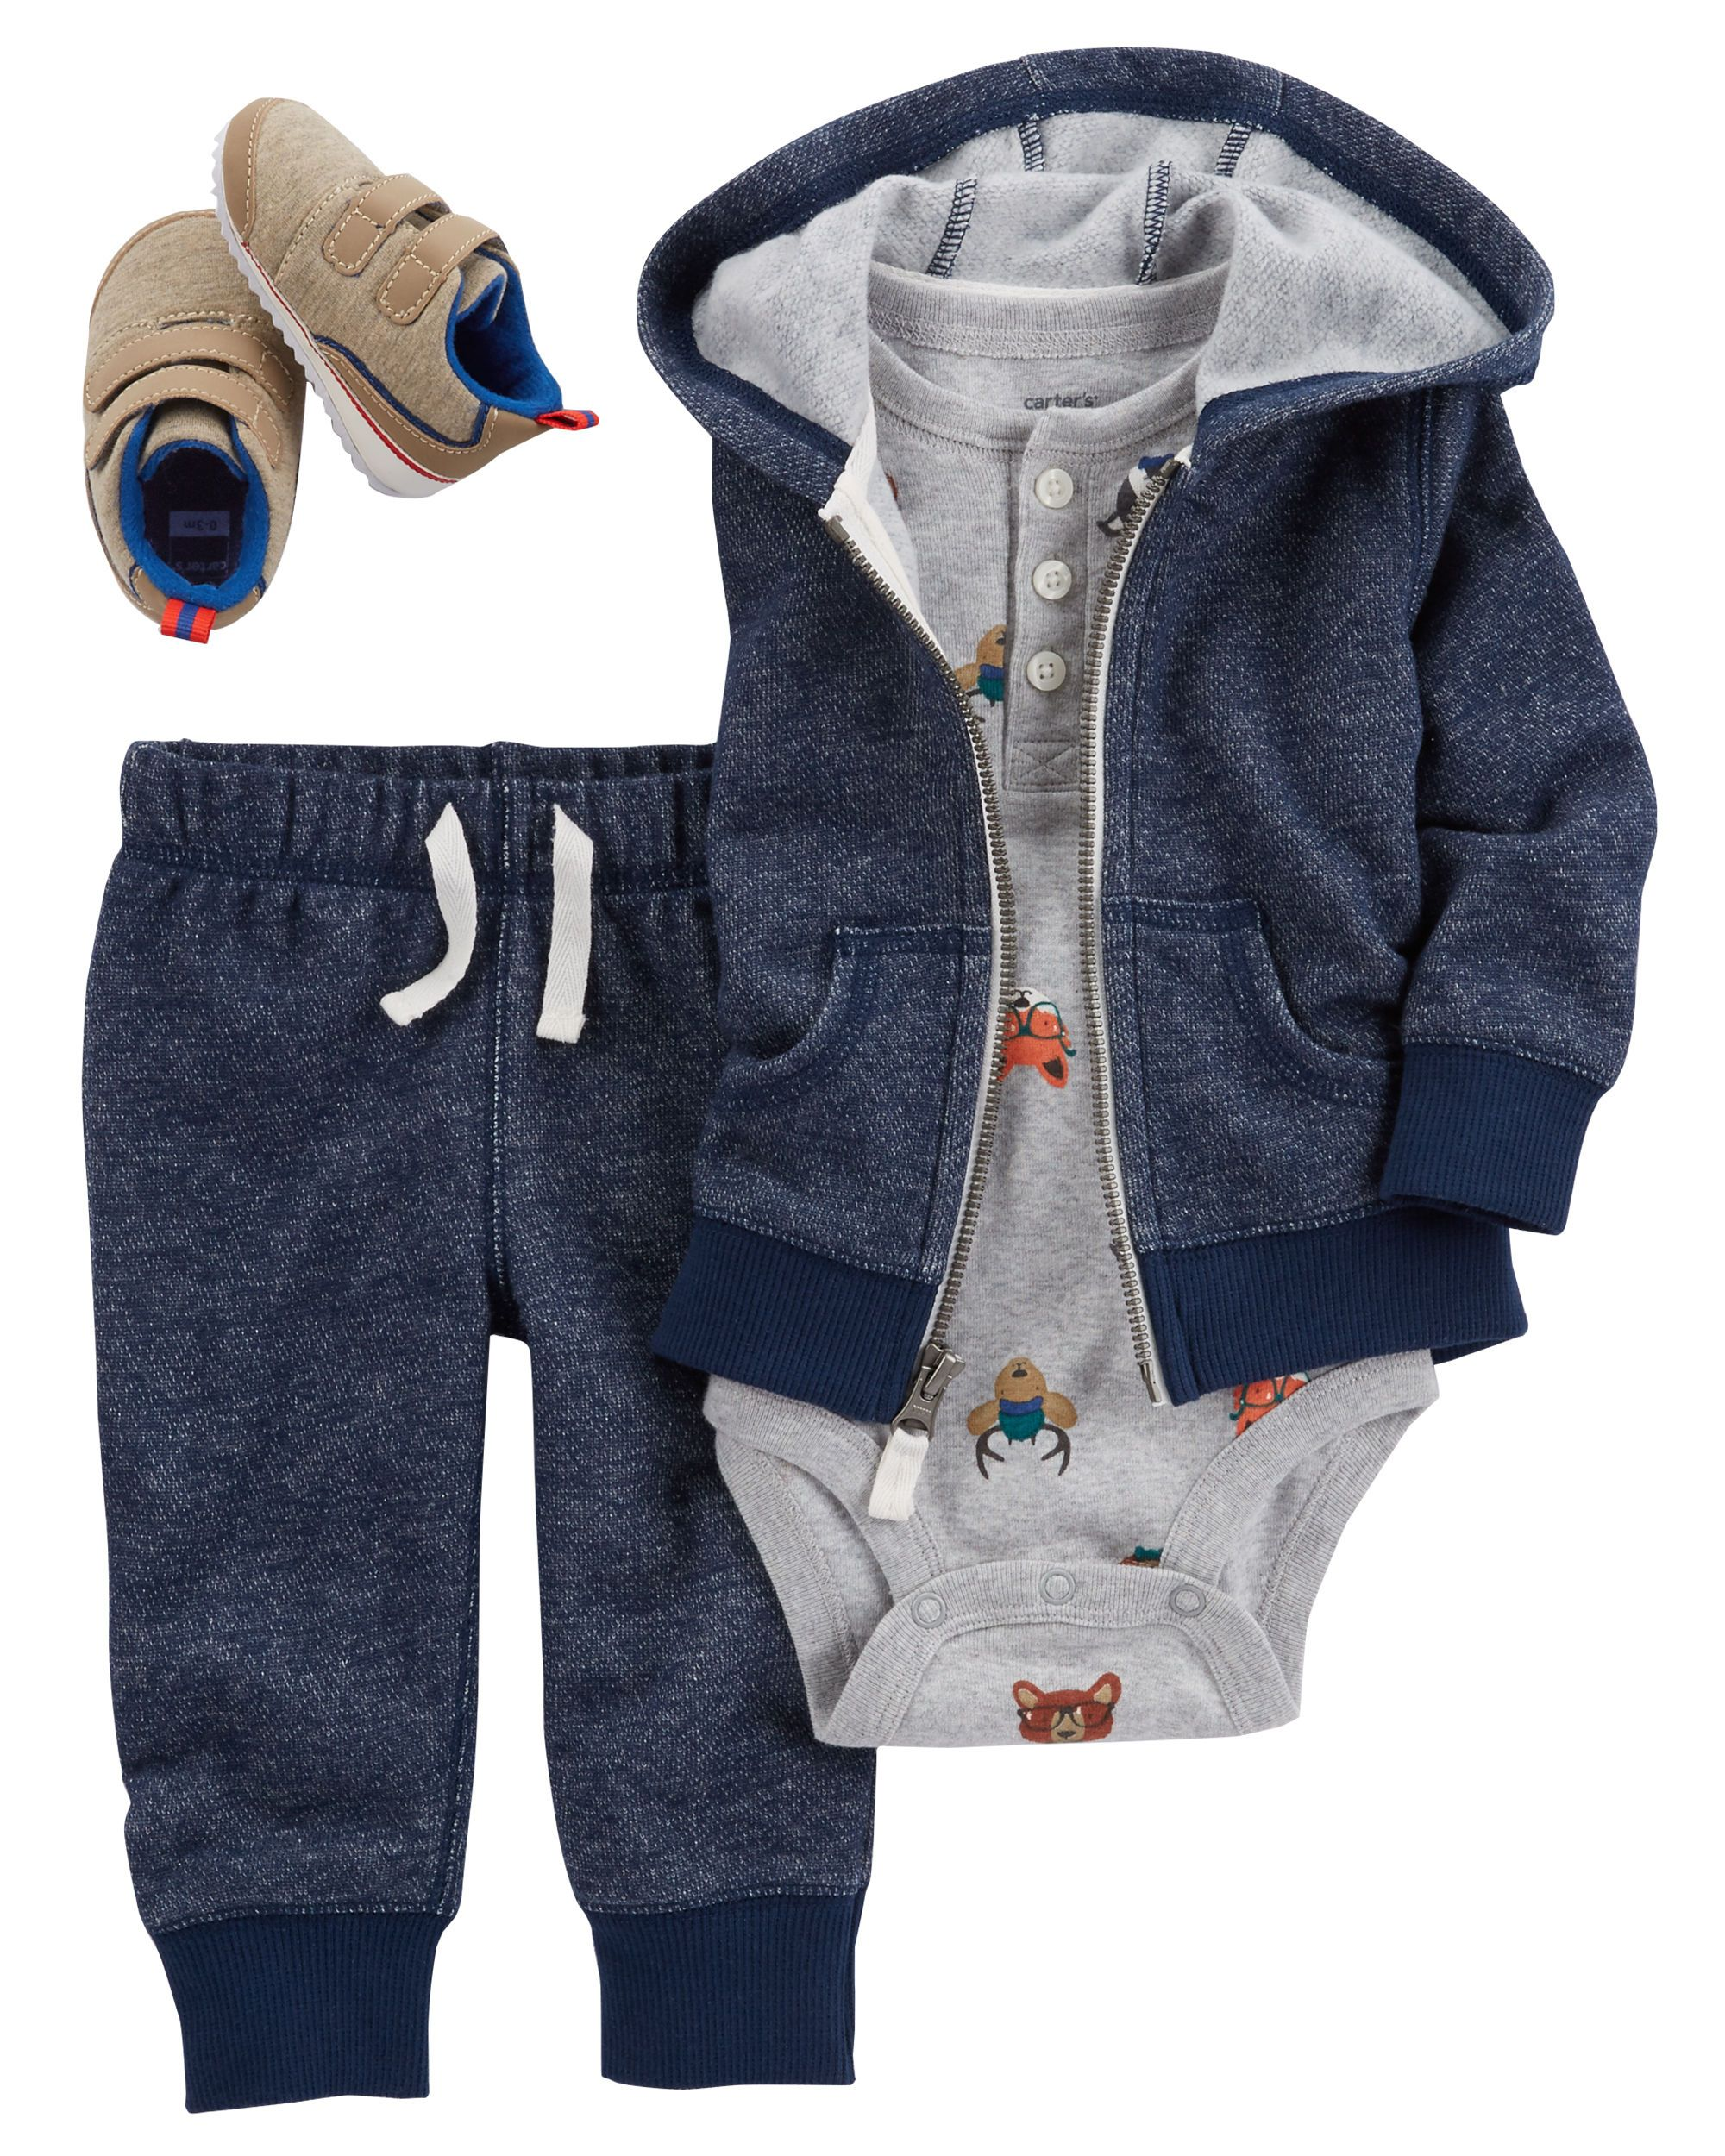 Baby Boy CARJUNE1F17 from Carters Shop clothing & accessories